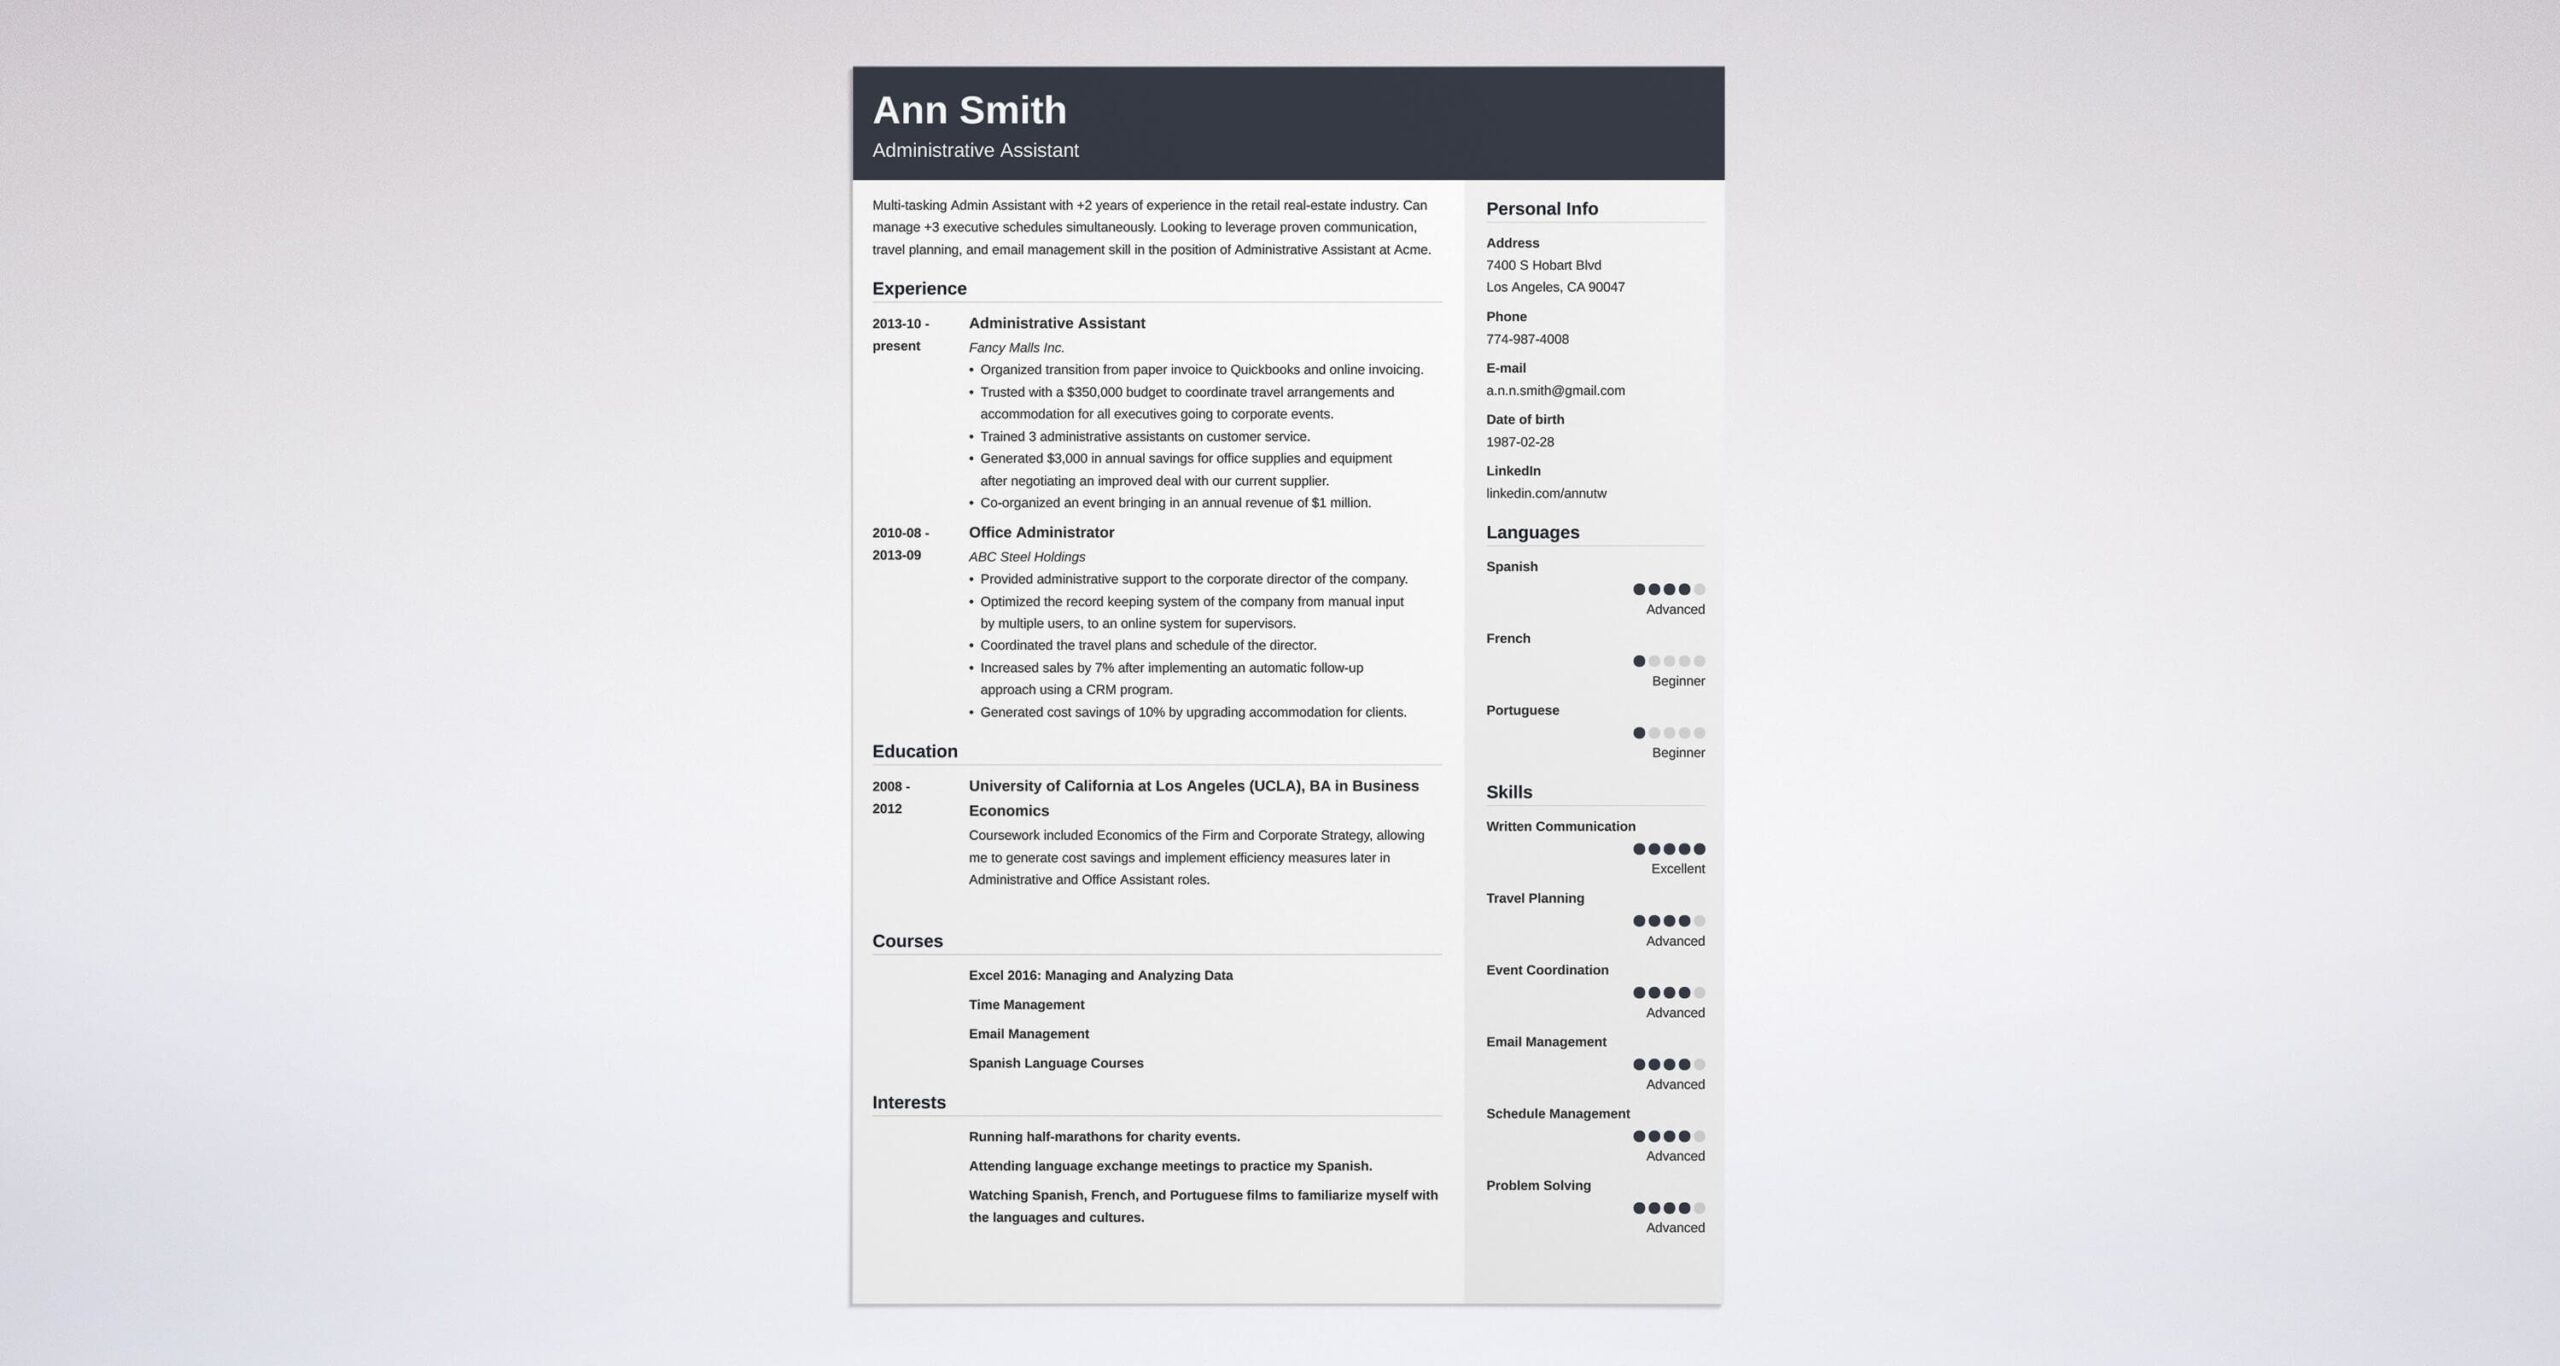 best administrative assistant resume examples free templates example hair stylist janitor Resume Free Administrative Assistant Resume Templates